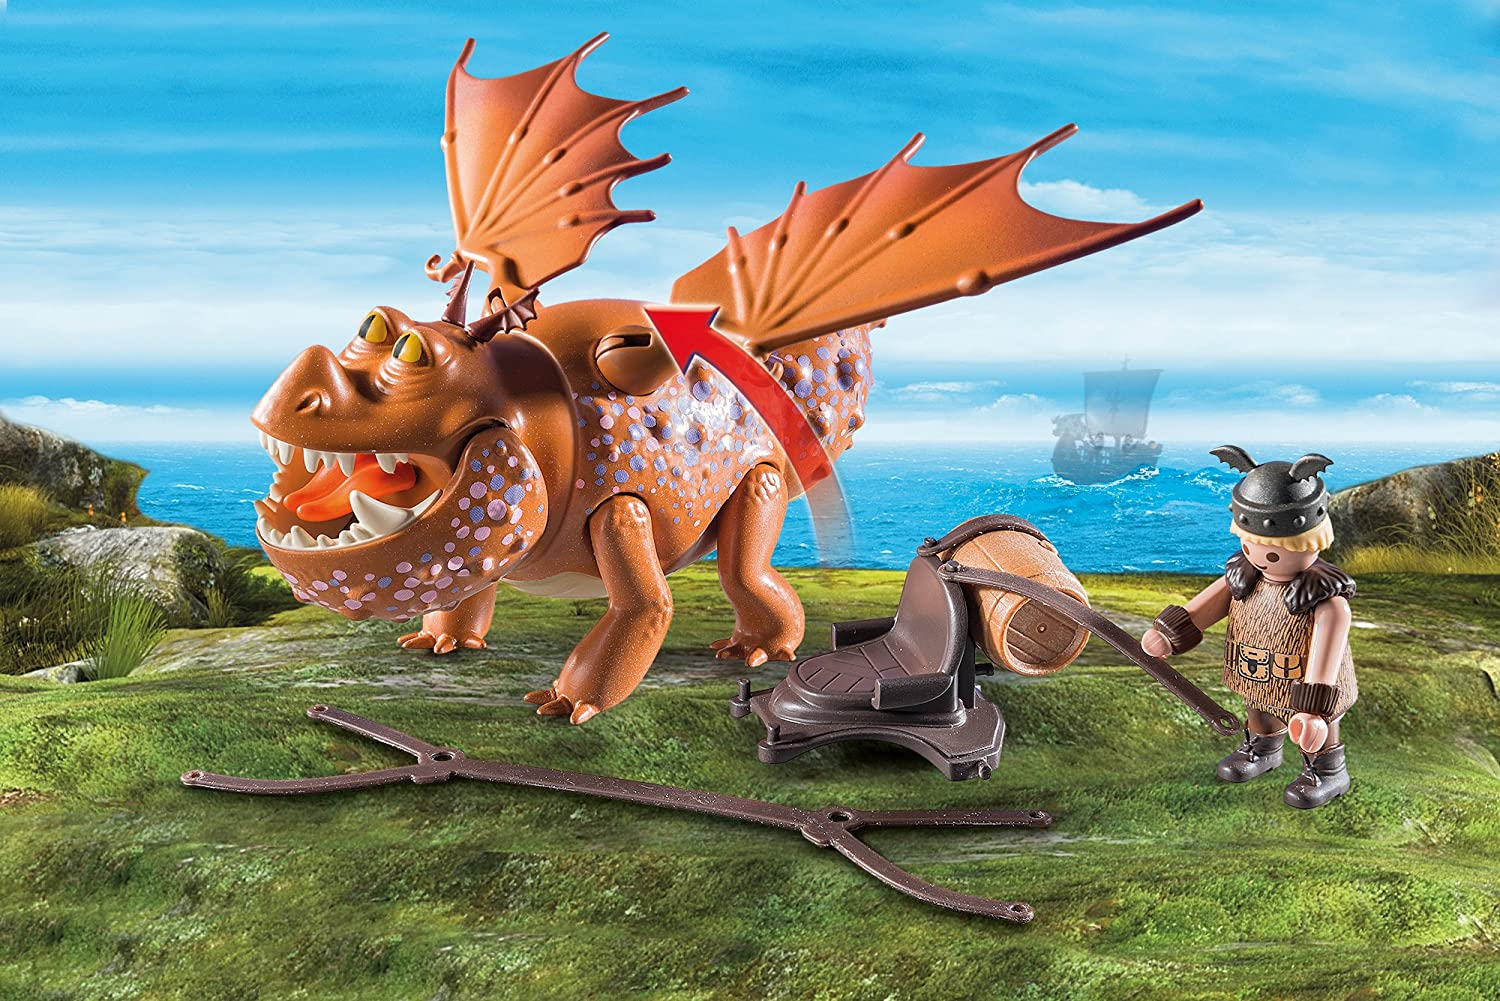 PLAYMOBIL/® 9460 How to Train Your Dragon Fishlegs Meatlug Multicolor